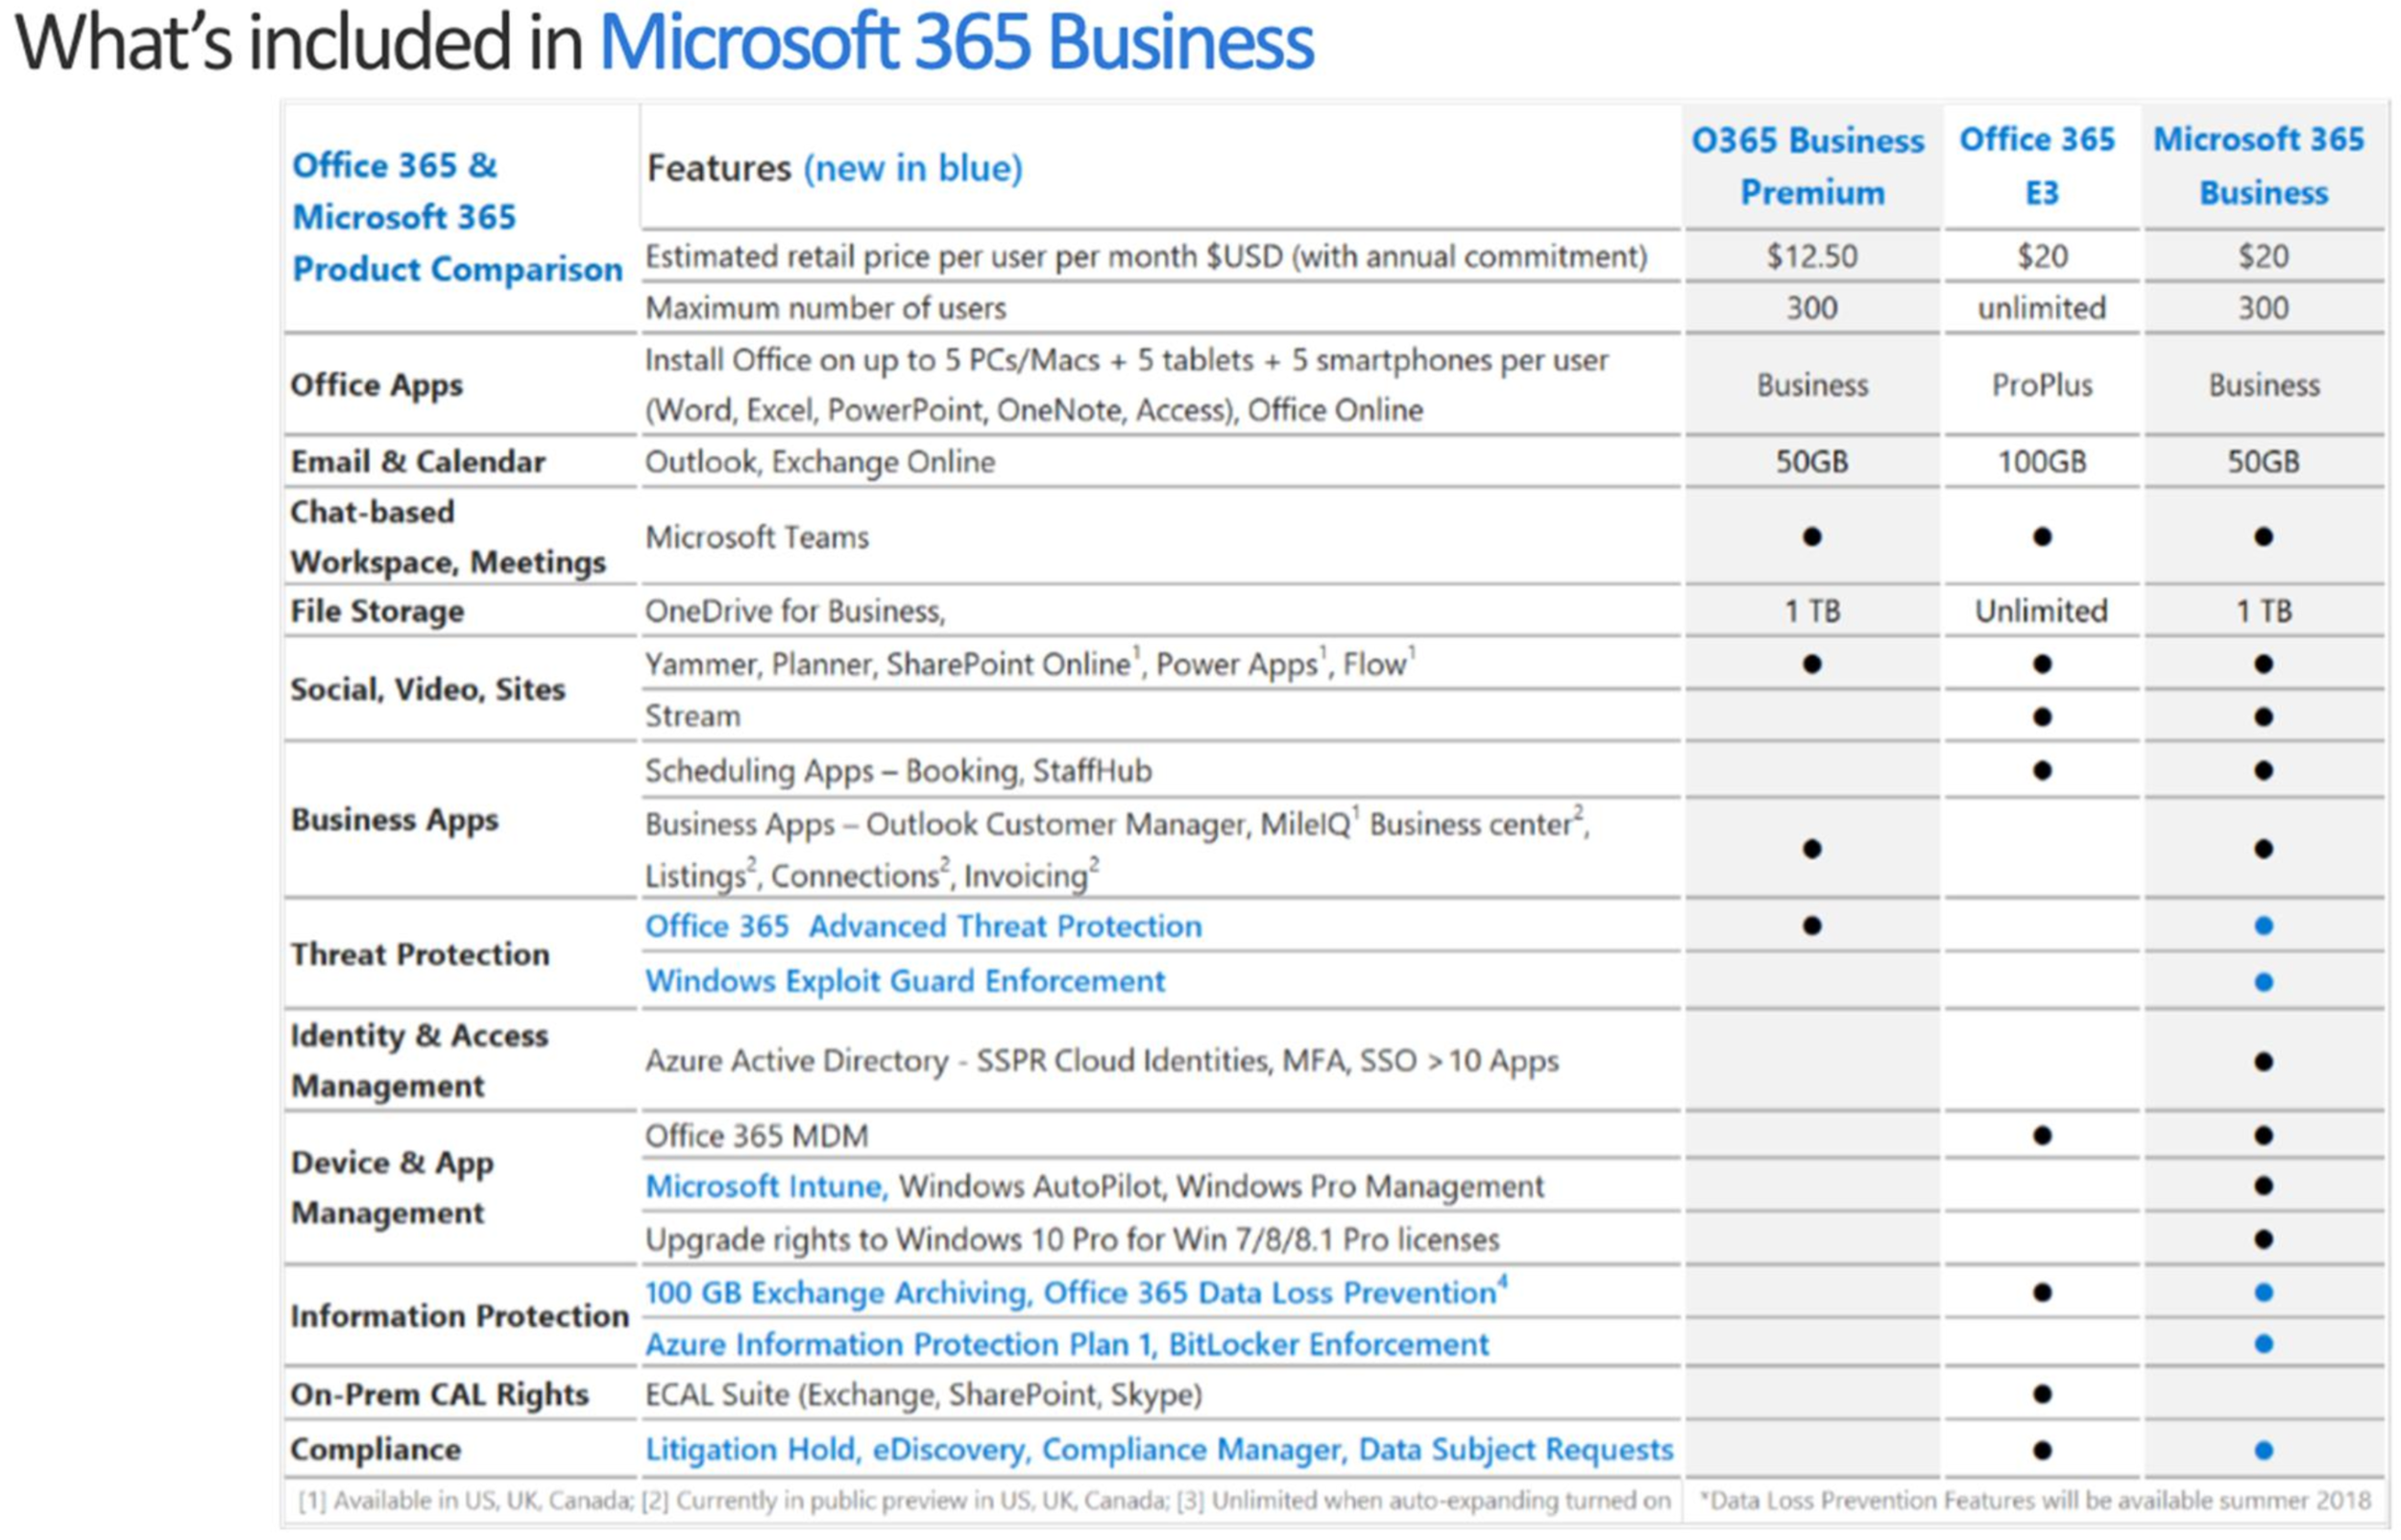 Microsoft 365 Business License Comparison with Office 365 E3